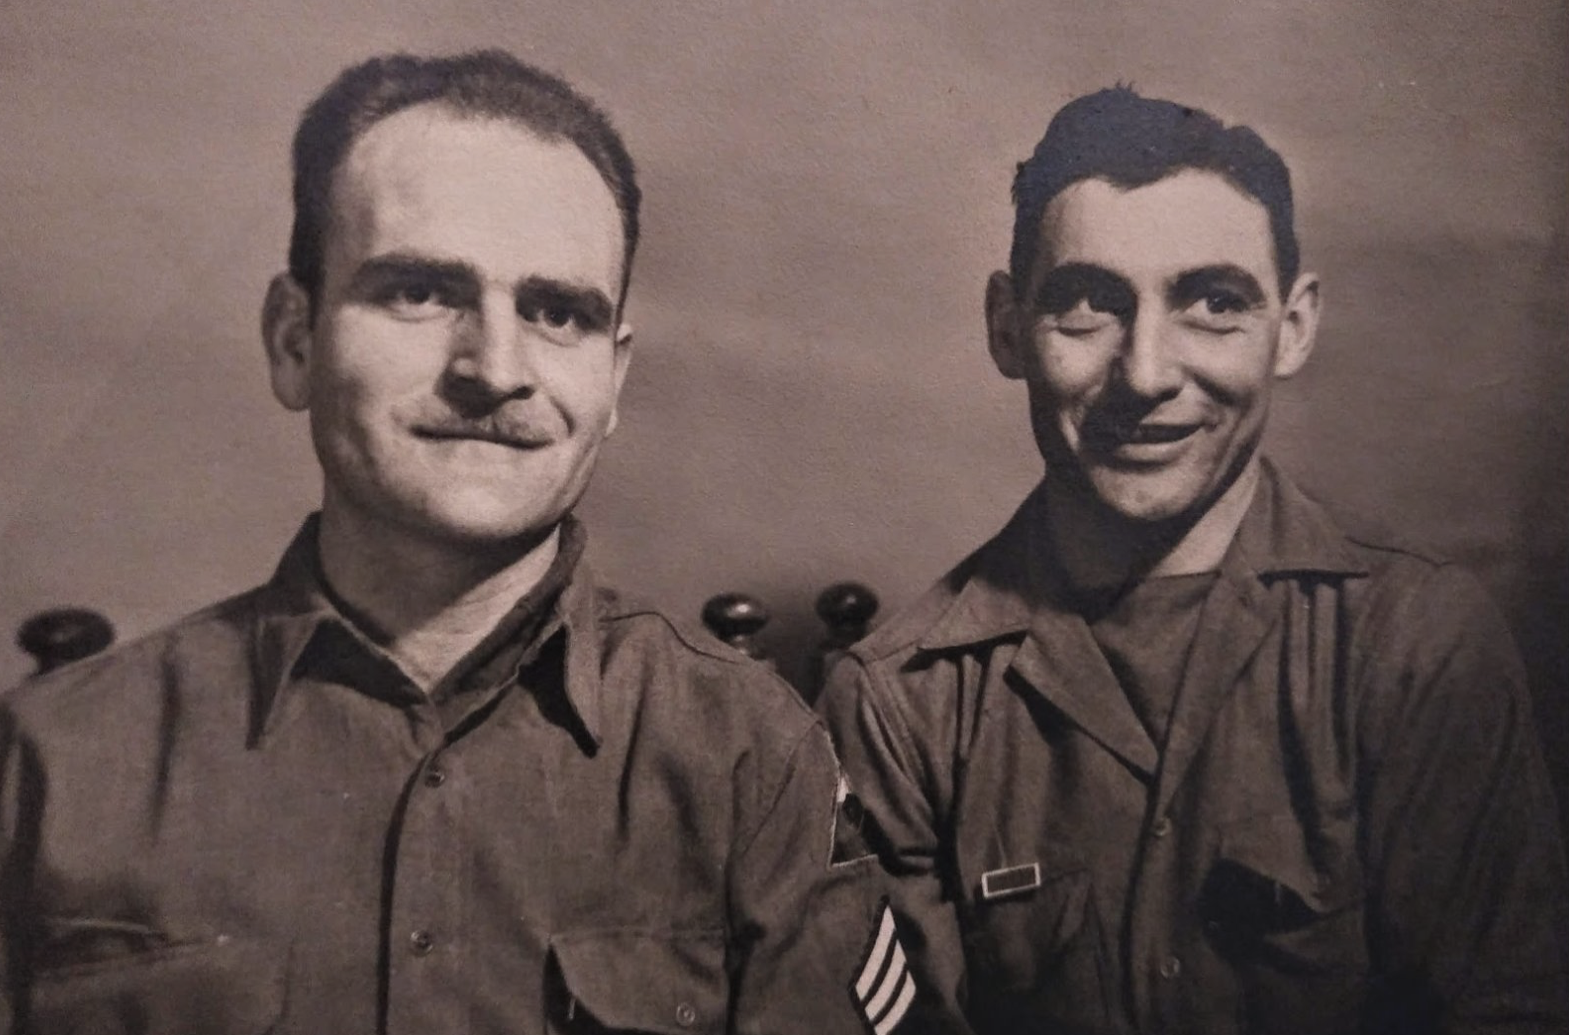 SSG William F. Greenplate (L) pictured with one of his men who wears the Presidential Unit Citation awarded to the 12th Armored Group after the Battle of the Bulge. Virginia Kruta/The Daily Caller